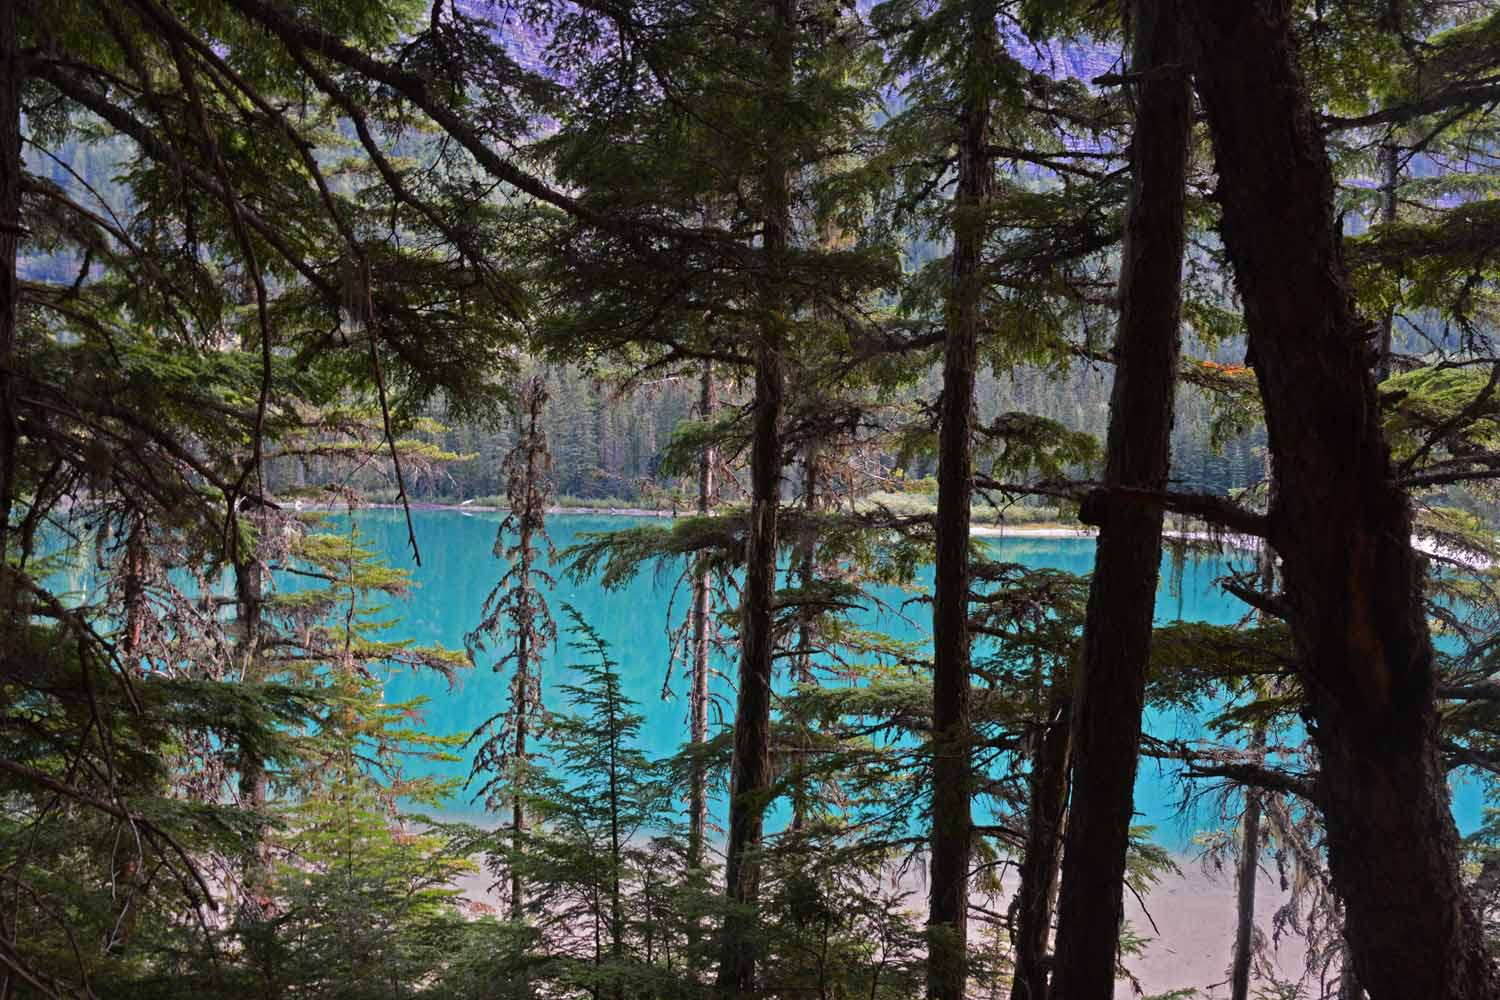 Avalanche Lake changes color when the sun shines.